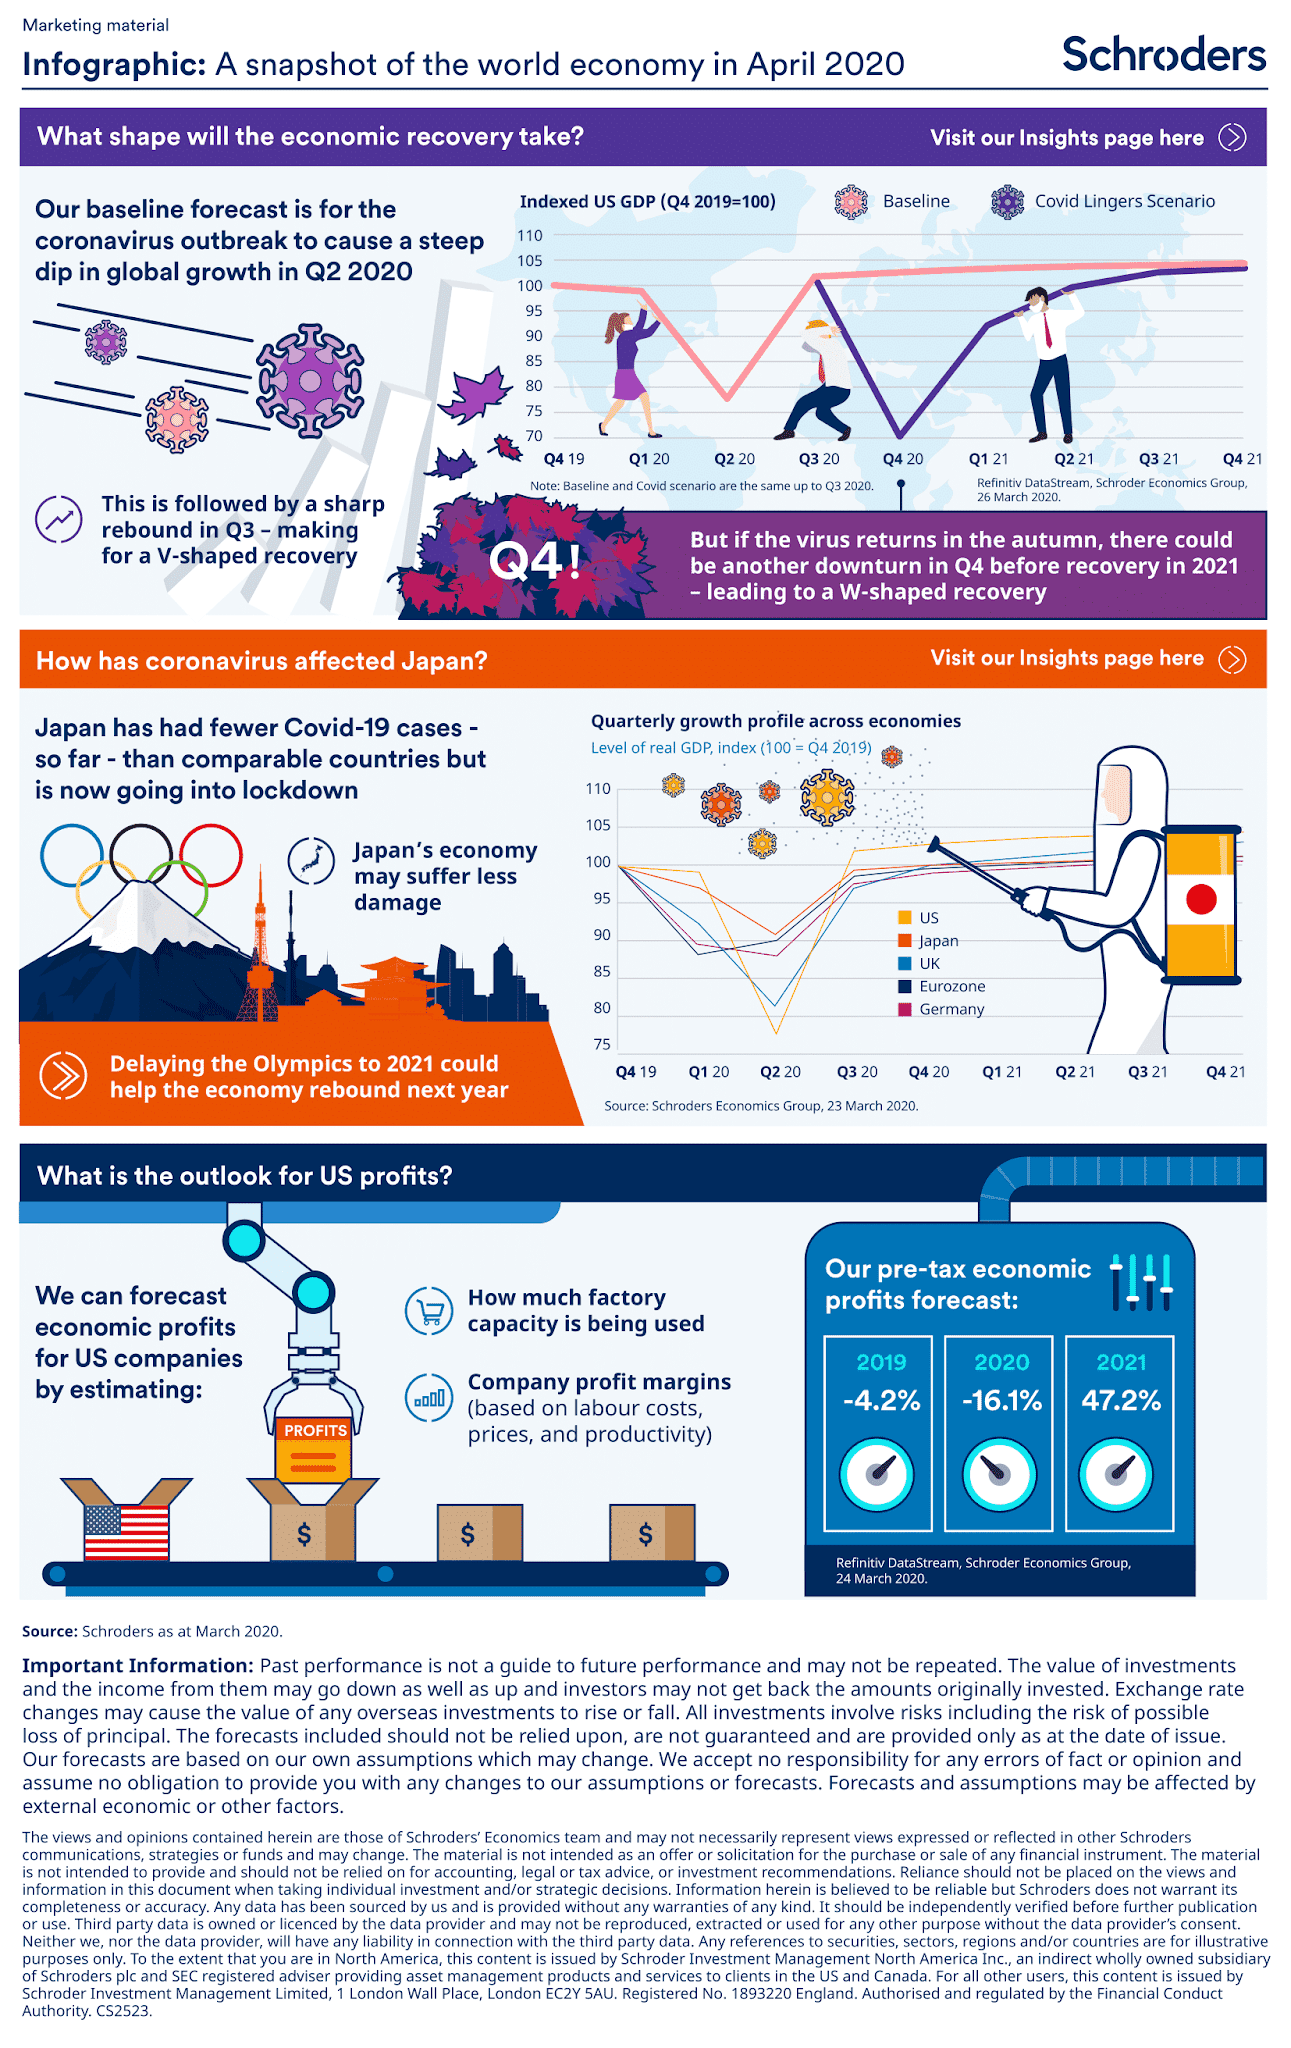 A Global Economic Snapshot of April 2020 #infographic